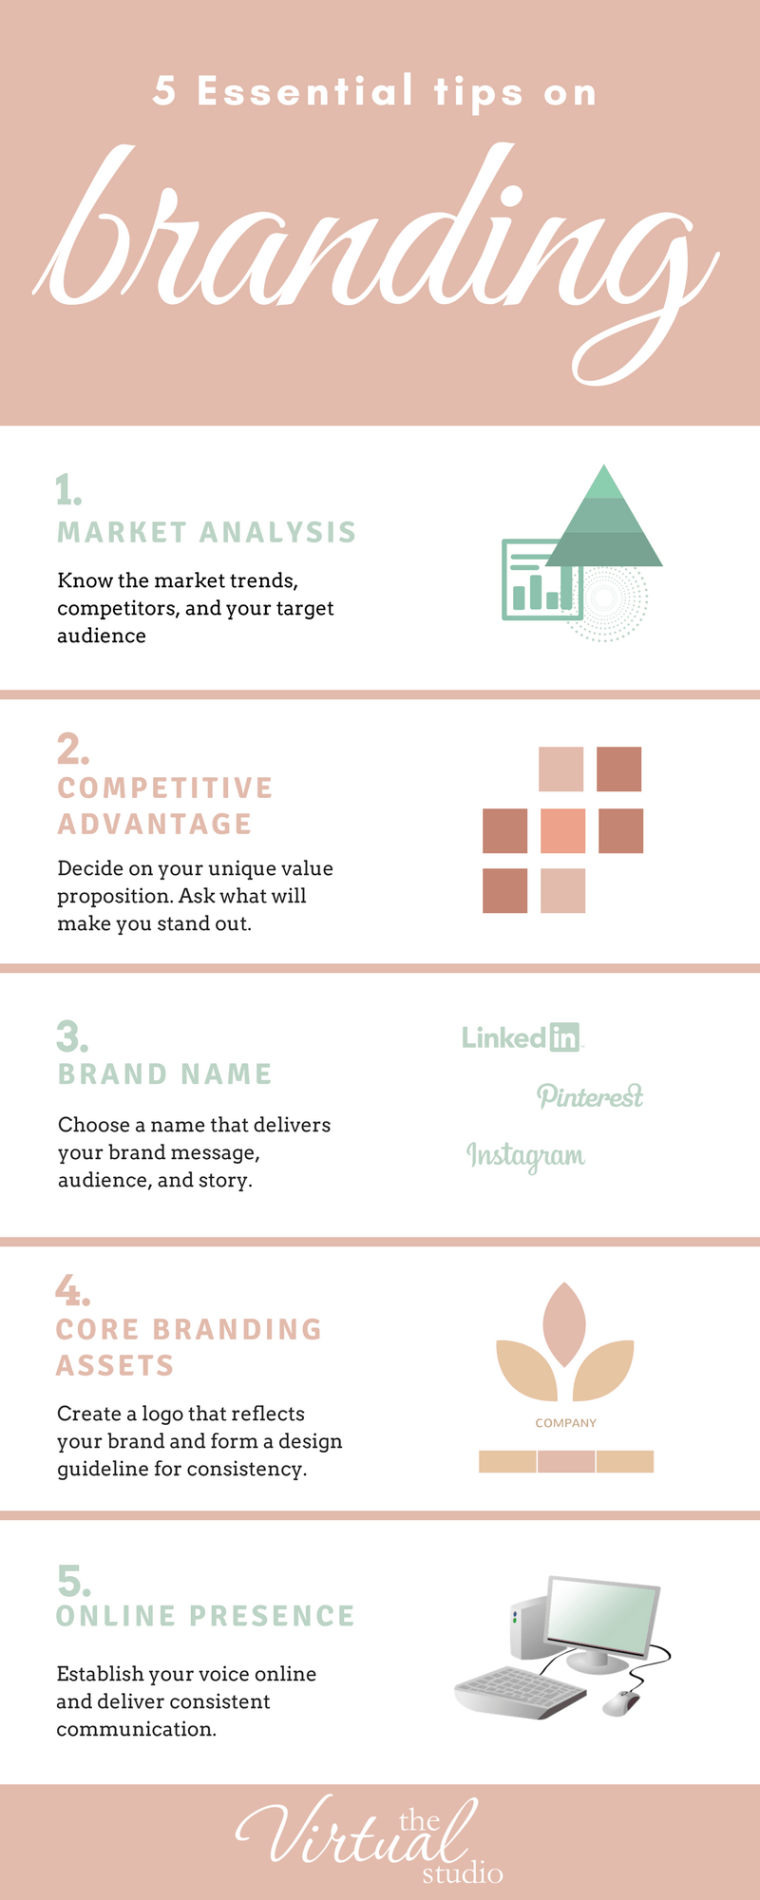 5 essential tips on branding